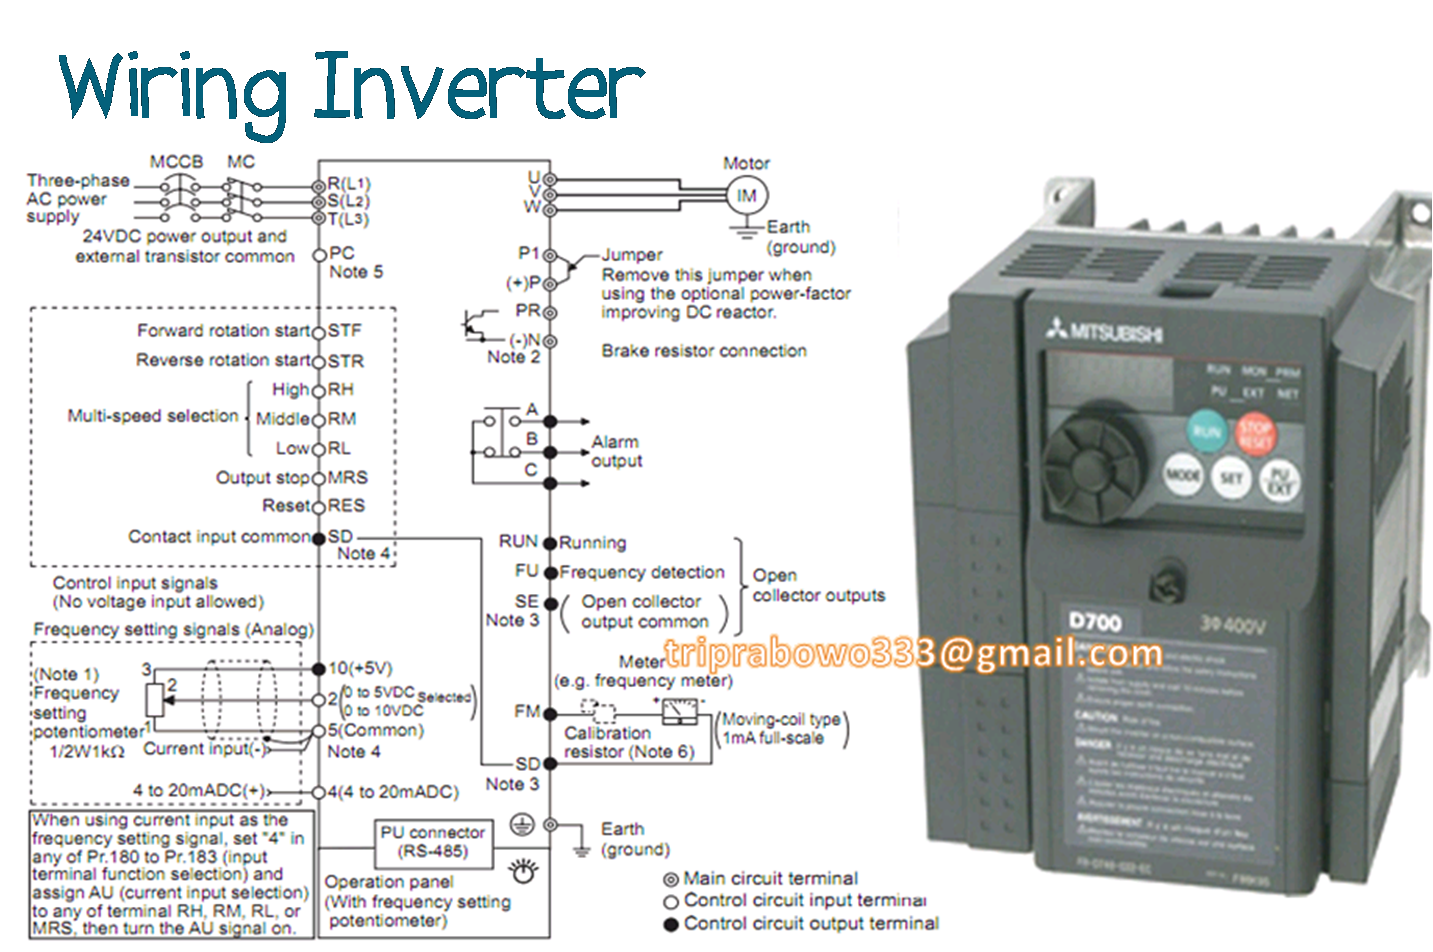 inverte2r  Sd Electric Motor Wiring Diagram on electric motor wiring color code, electric motor plug, ac motor diagram, electric motor wiring connections, electric motor winding diagram, electric motor parts, electric motor batteries, simple electric motor diagram, electric motor wire colors, electric motor brushes, electric fan motors, circuit diagram, electric motor control diagram, electric motor armature, electric simple dc motor, electric motor schematic, dc motor diagram, electric motor 1 hp pump, electric motor science project, electric motoes,